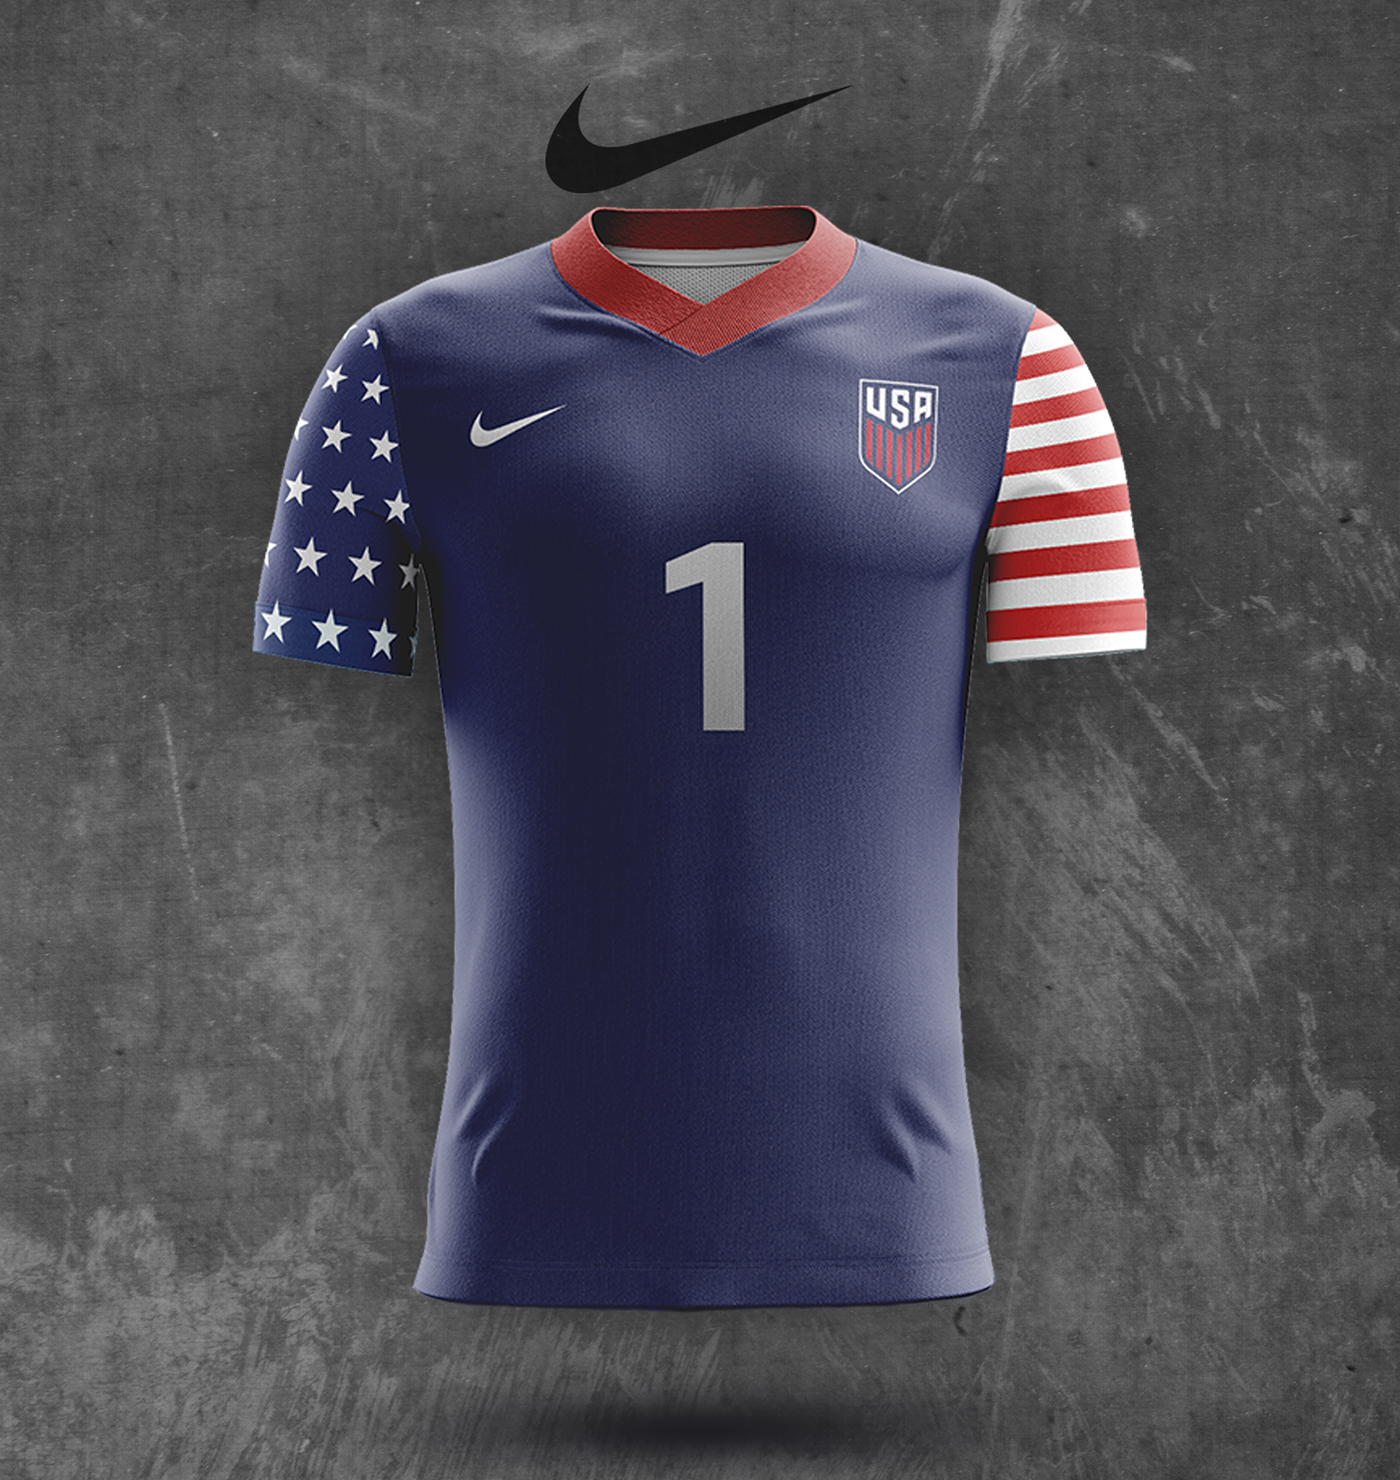 b97cb1c32 Concept US Men s National Team Nike Soccer Kit Designs on Behance